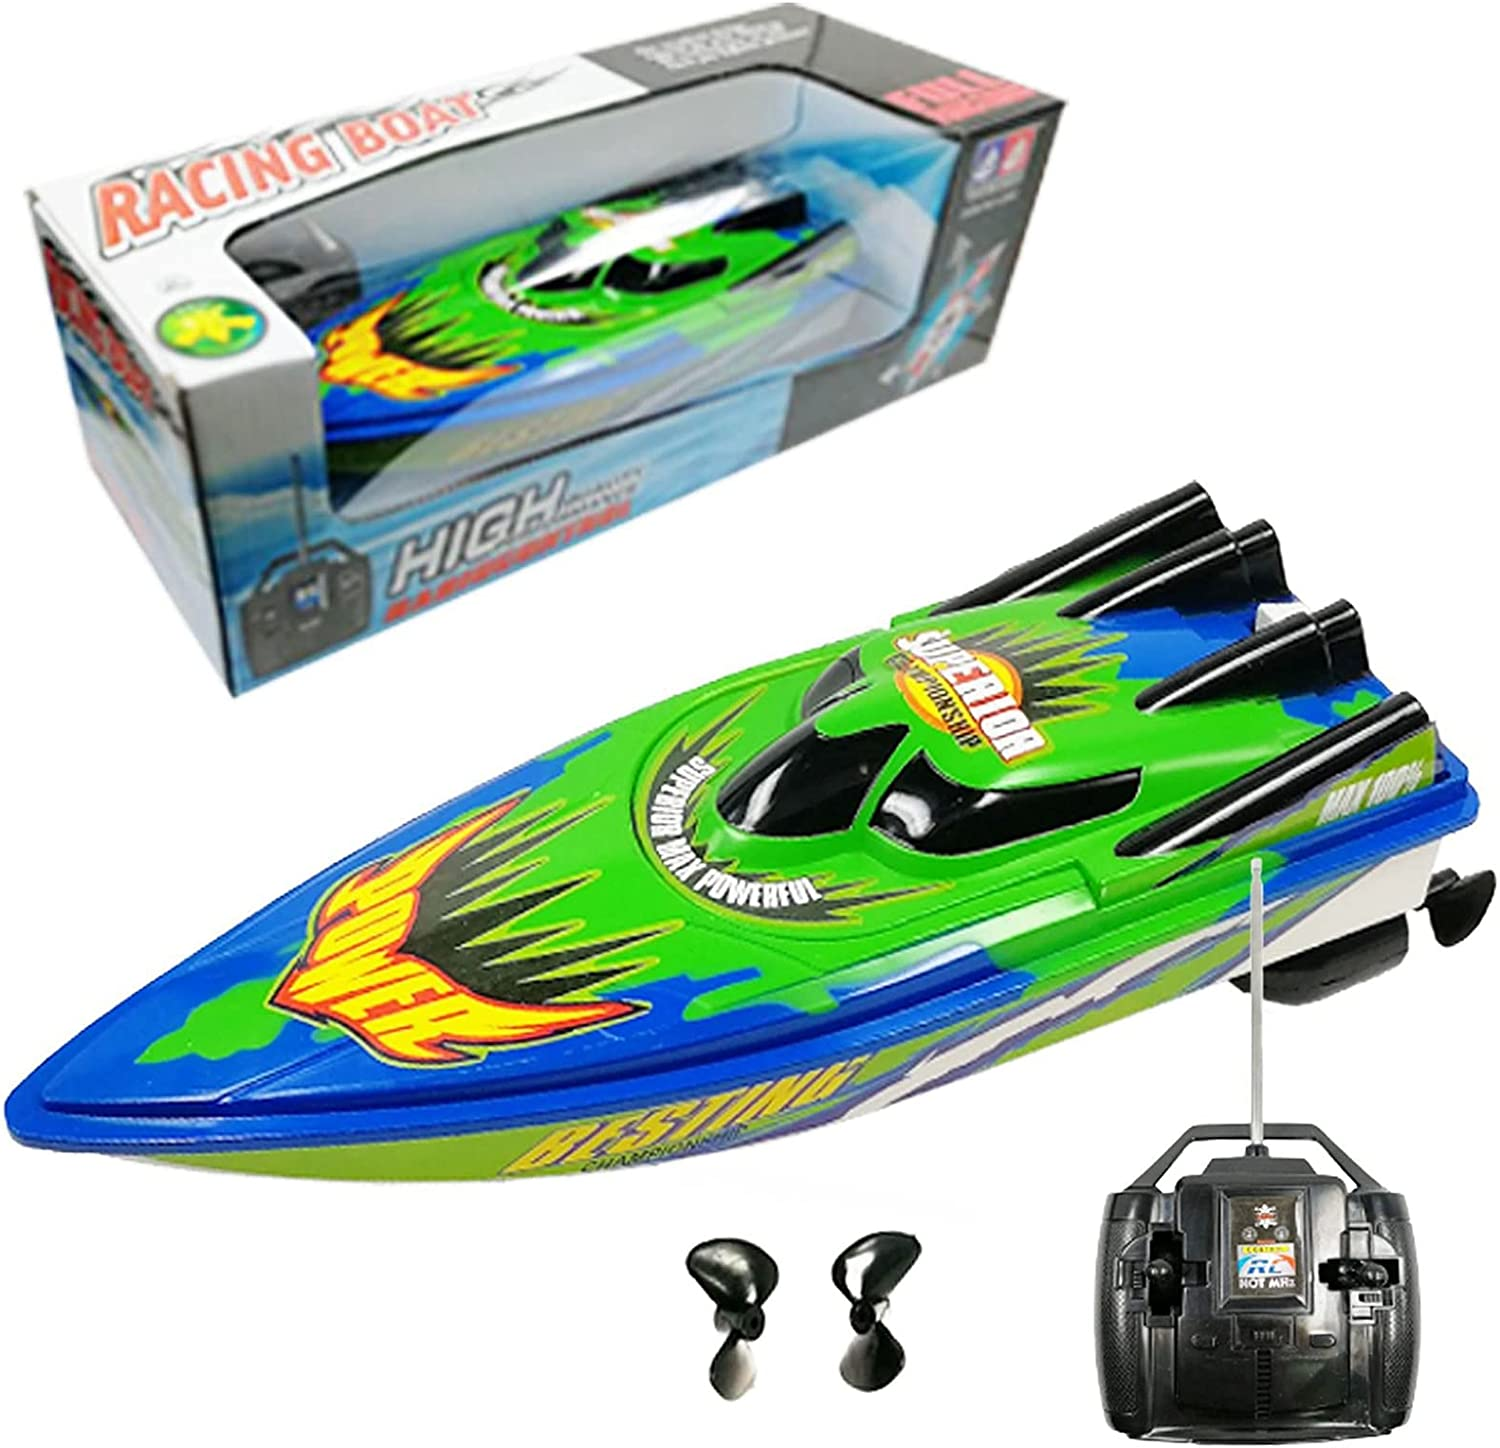 Electric Boat Toy excellence with Remote Waterproof Control Spe Cover 5 popular High